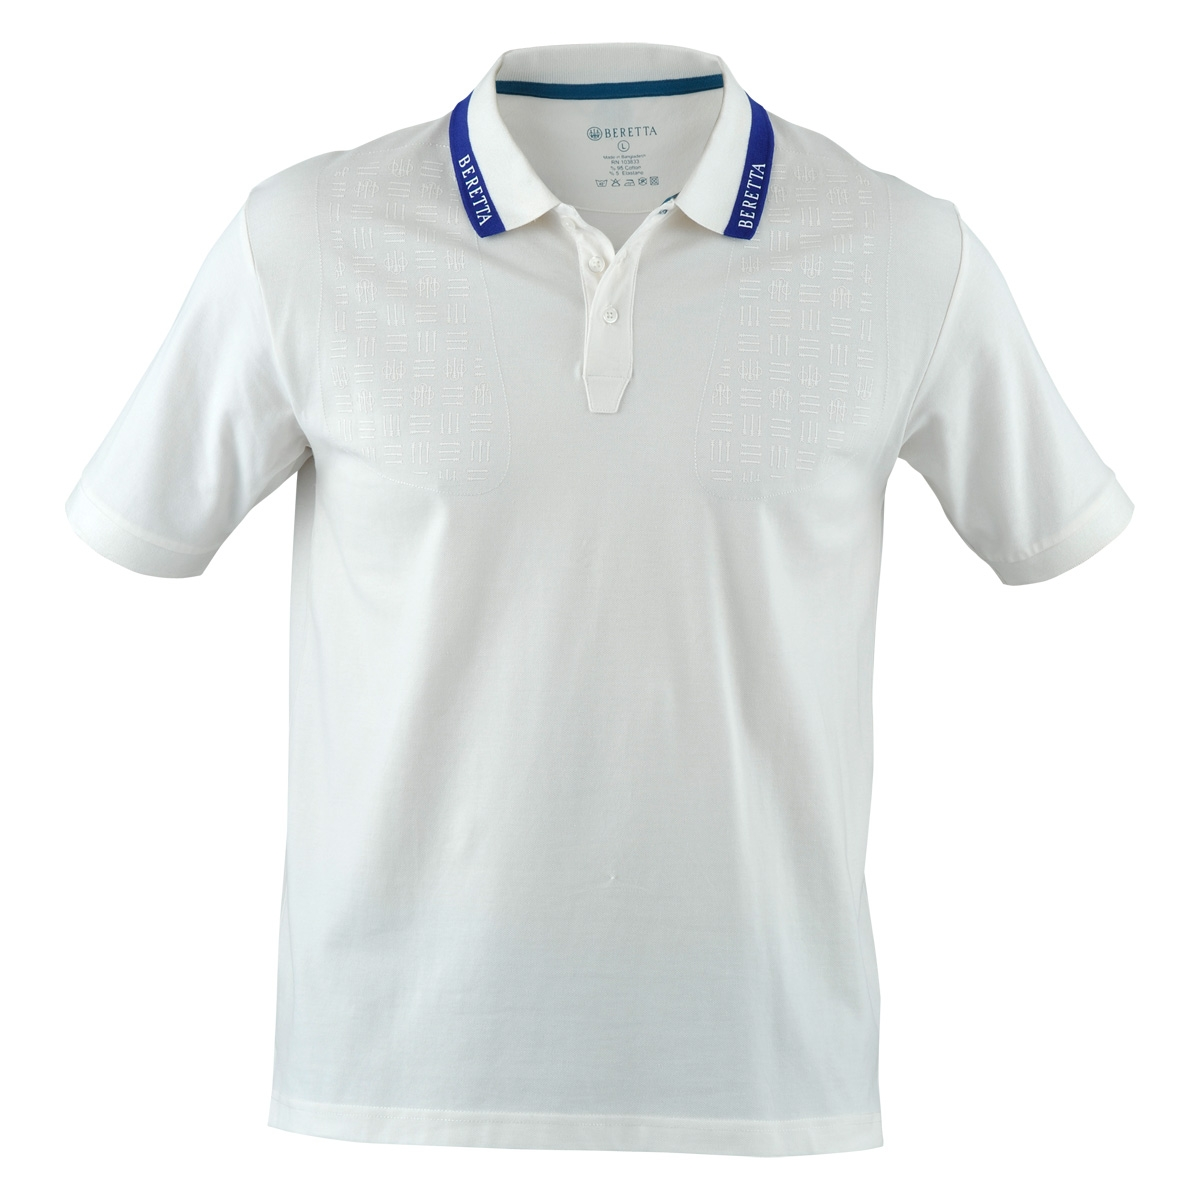 Little Boys Mesh Polo Shirt (7, White) $ 35 00 Prime. Polo Ralph Lauren. Men's Long Sleeve Pony Logo T-Shirt - Medium - White With Navy Pony $ 42 out of 5 stars 3. Polo Ralph Lauren. Mens Custom Slim Fit Mesh Polo T-Shirt. from $ 57 84 Prime. out of 5 stars 5. Polo Ralph Lauren. Mens Custom Fit Graphic Logo T-Shirt.